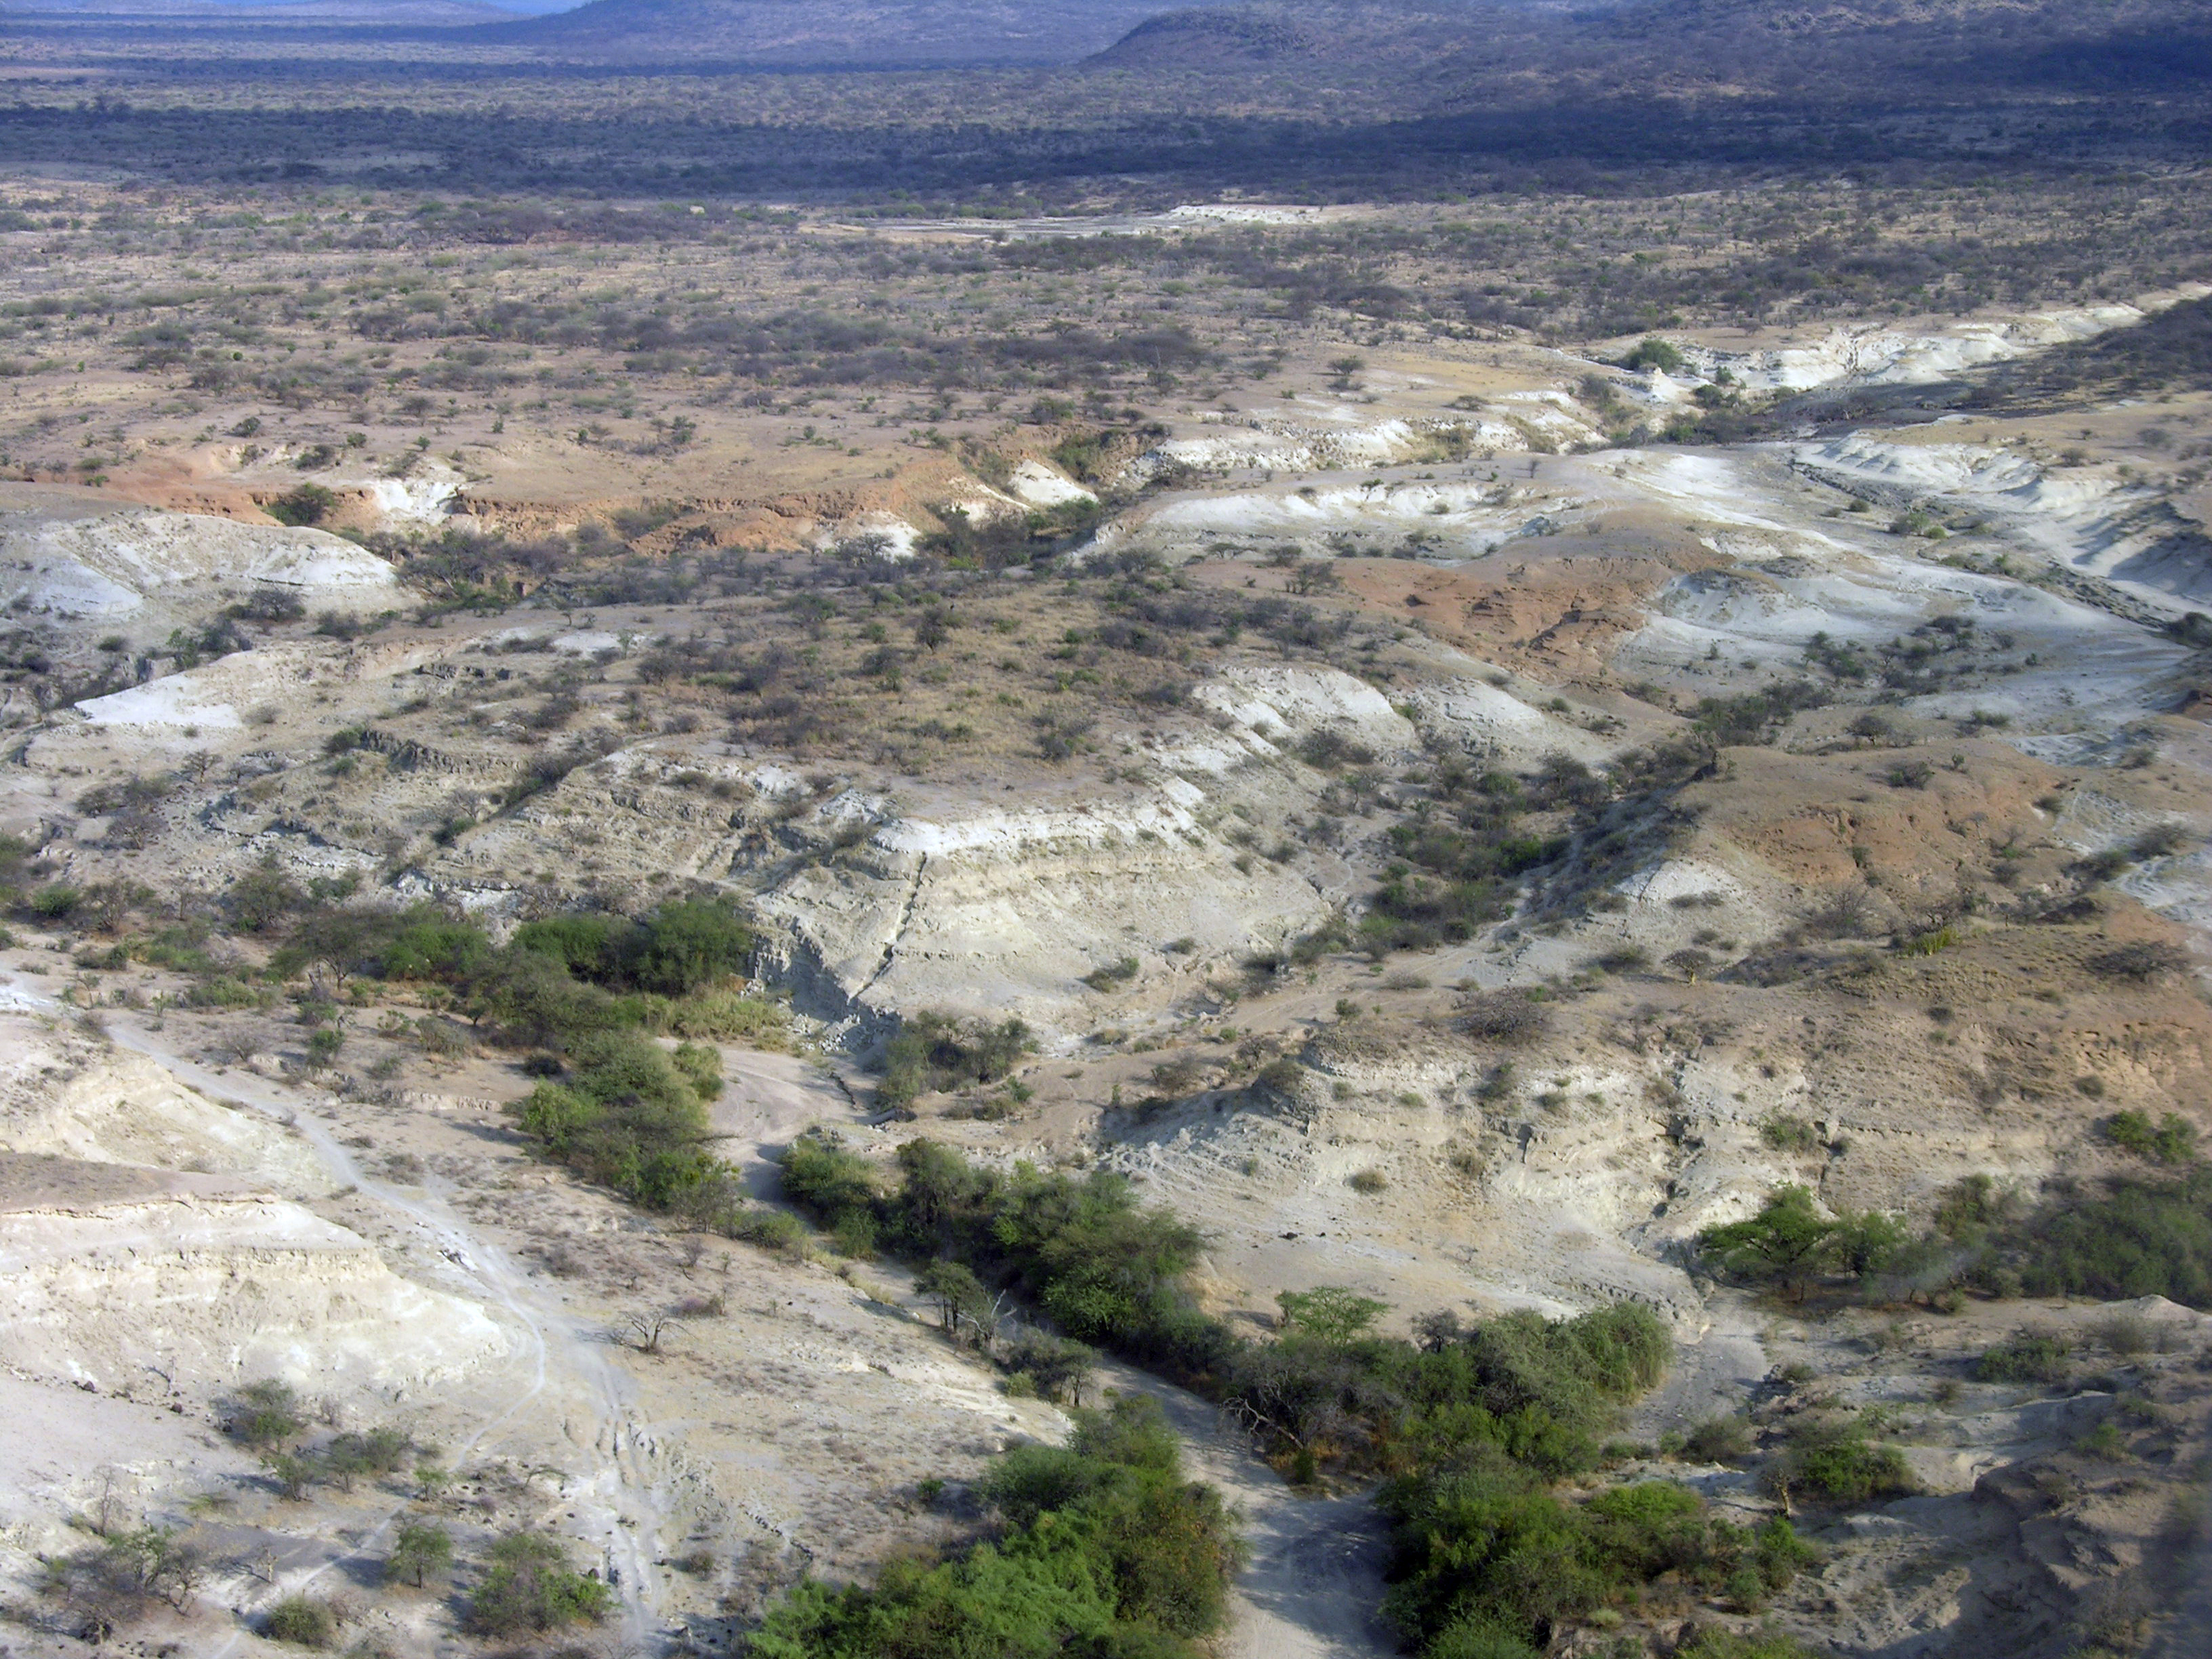 Aerial view of the Olorgesailie Basin.